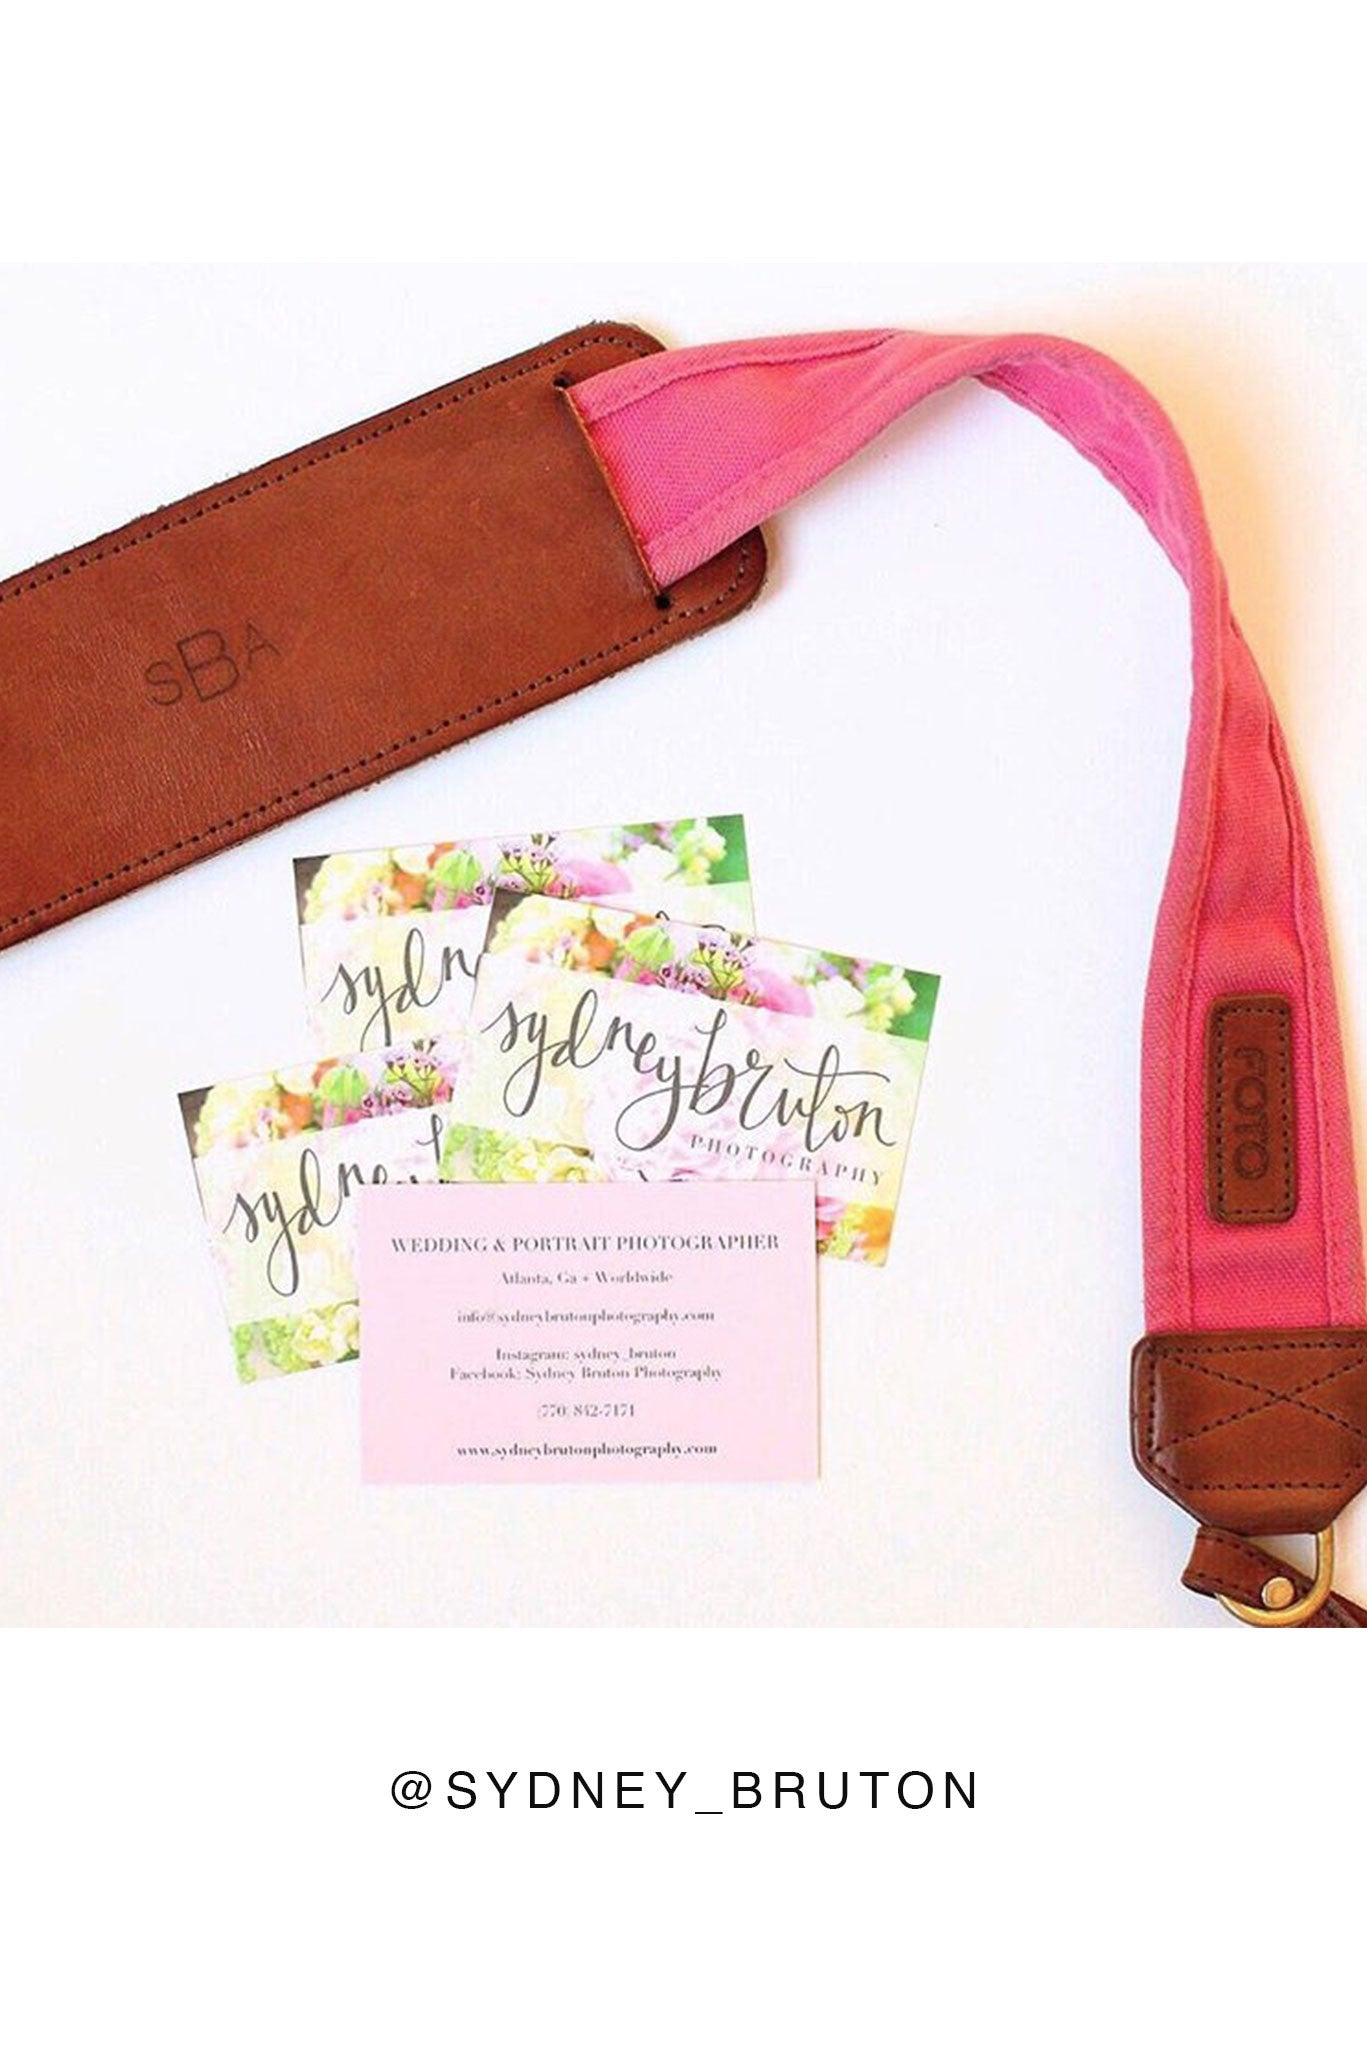 FOTO | Hibiscus Fotostrap - a hot pink canvas and genuine leather camera strap that can be personalized with a monogram or business logo, making it the perfect personalized gift!